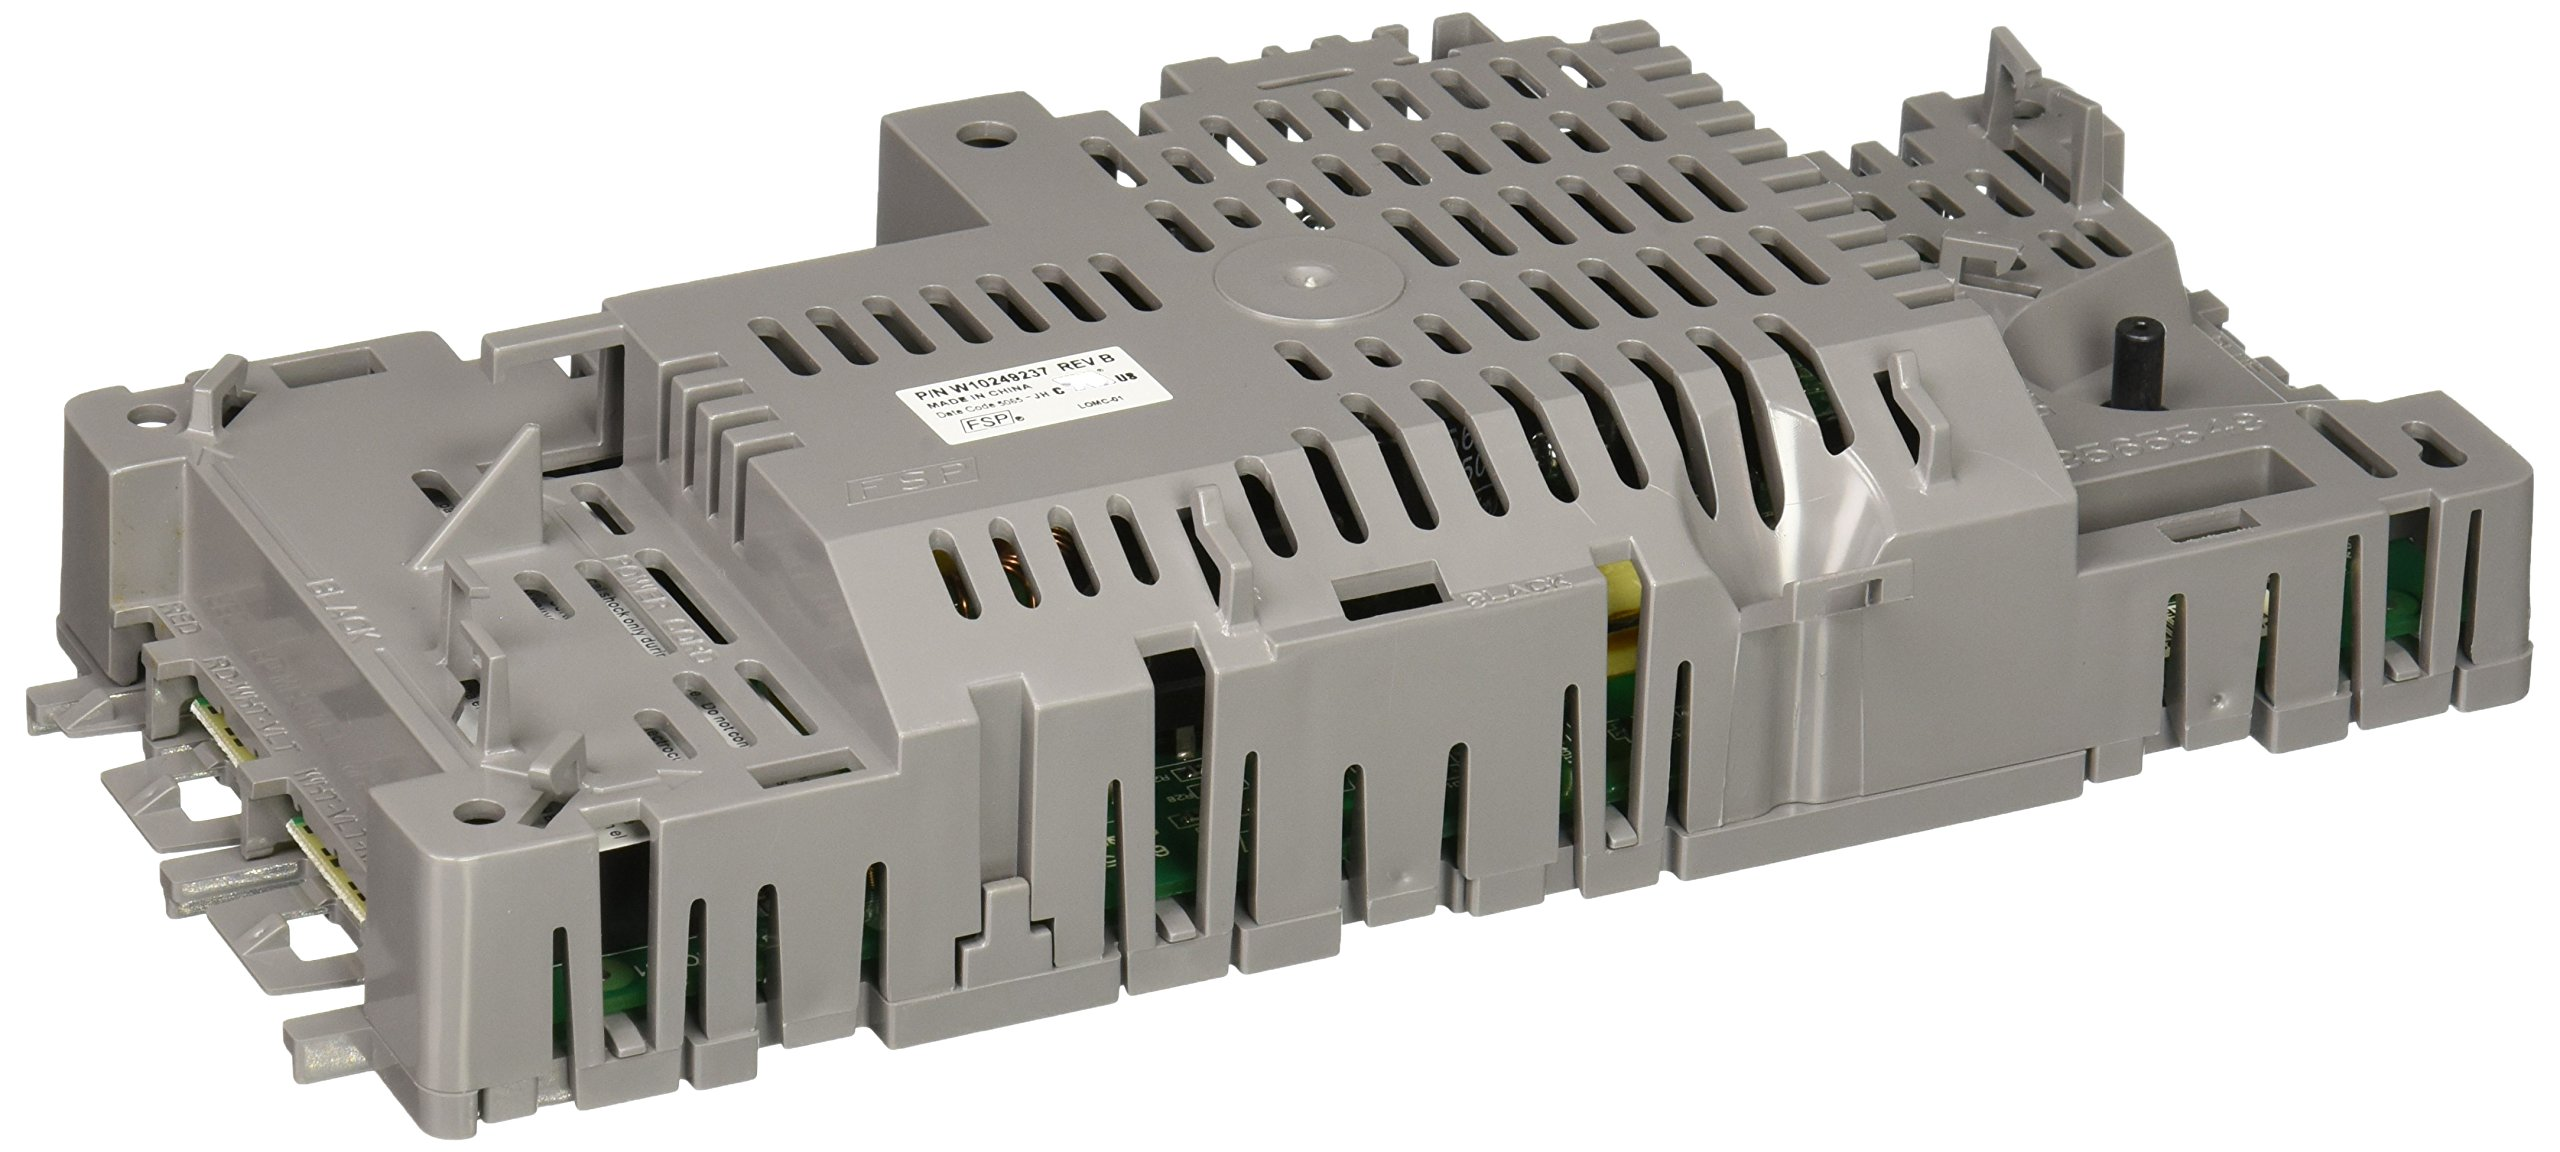 Whirlpool W10249237 Control Unit for Washer